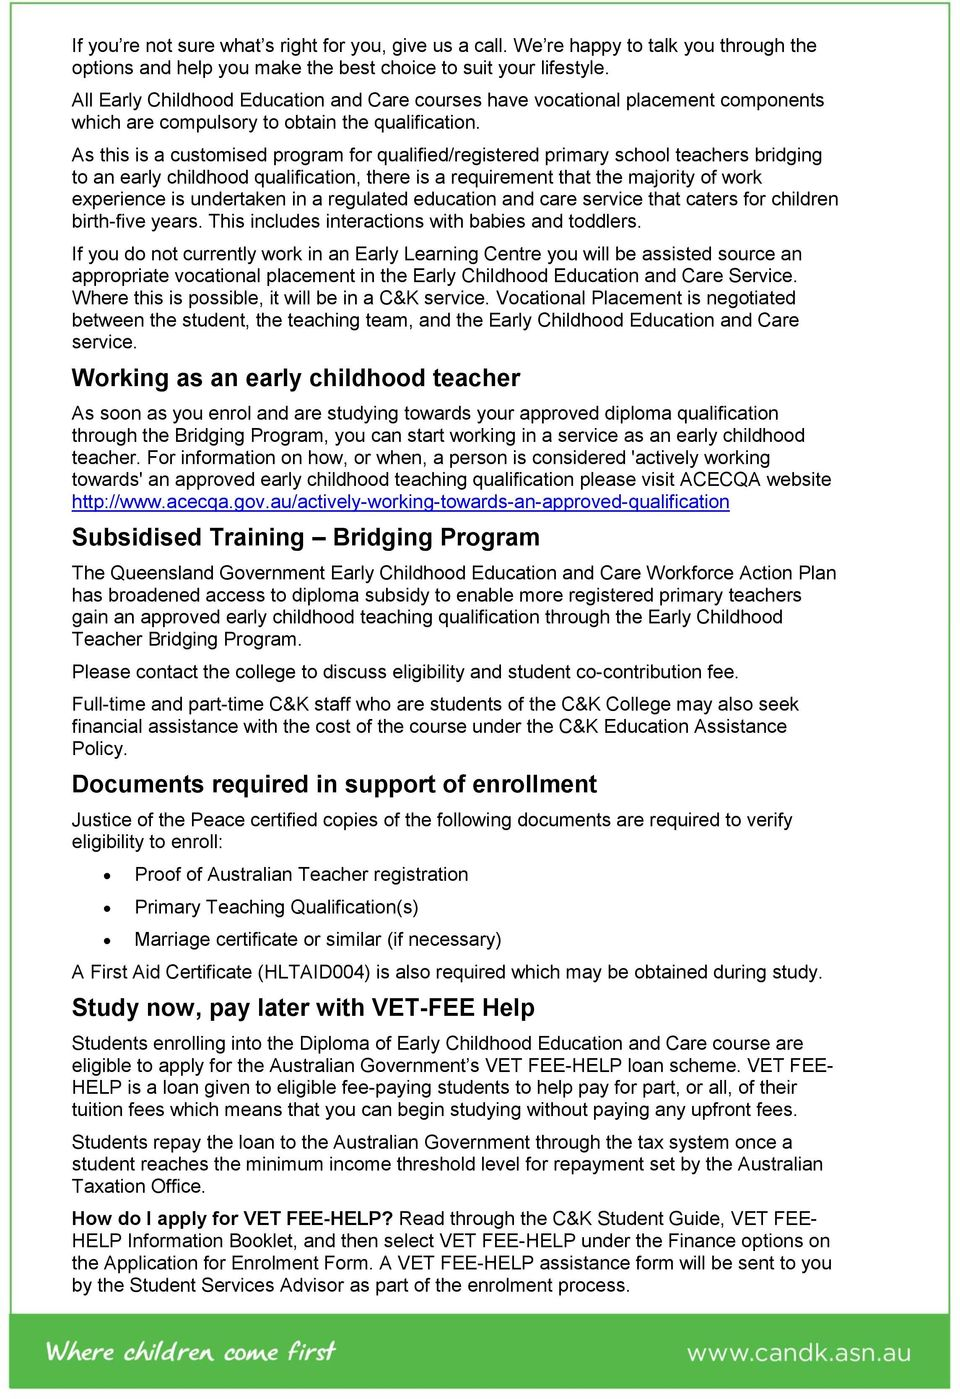 As this is a customised program for qualified/registered primary school teachers bridging to an early childhood qualification, there is a requirement that the majority of work experience is